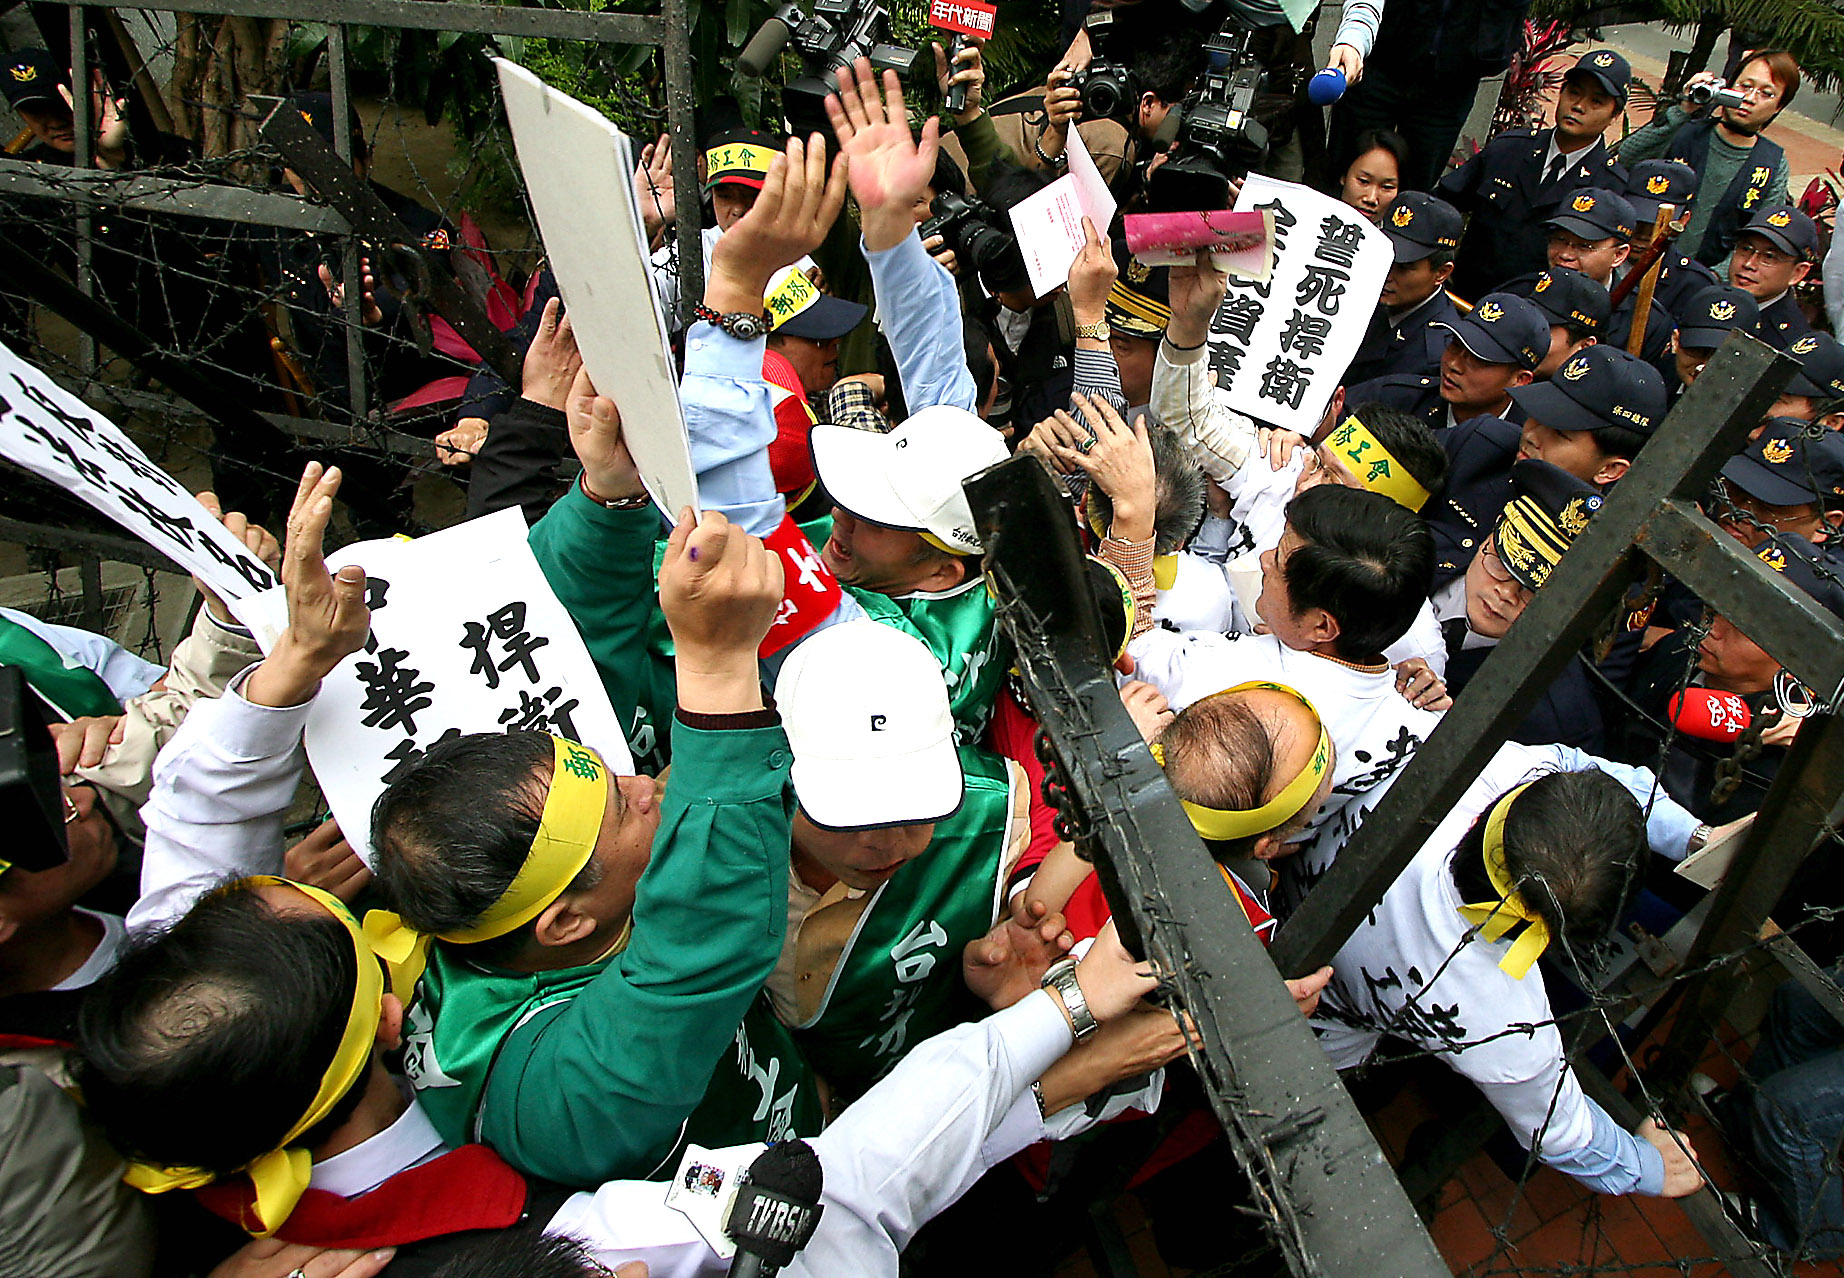 Protesters get into a conflict with police, February 12, 2007, at a name-change ceremony of Taiwan Post Co., Ltd.